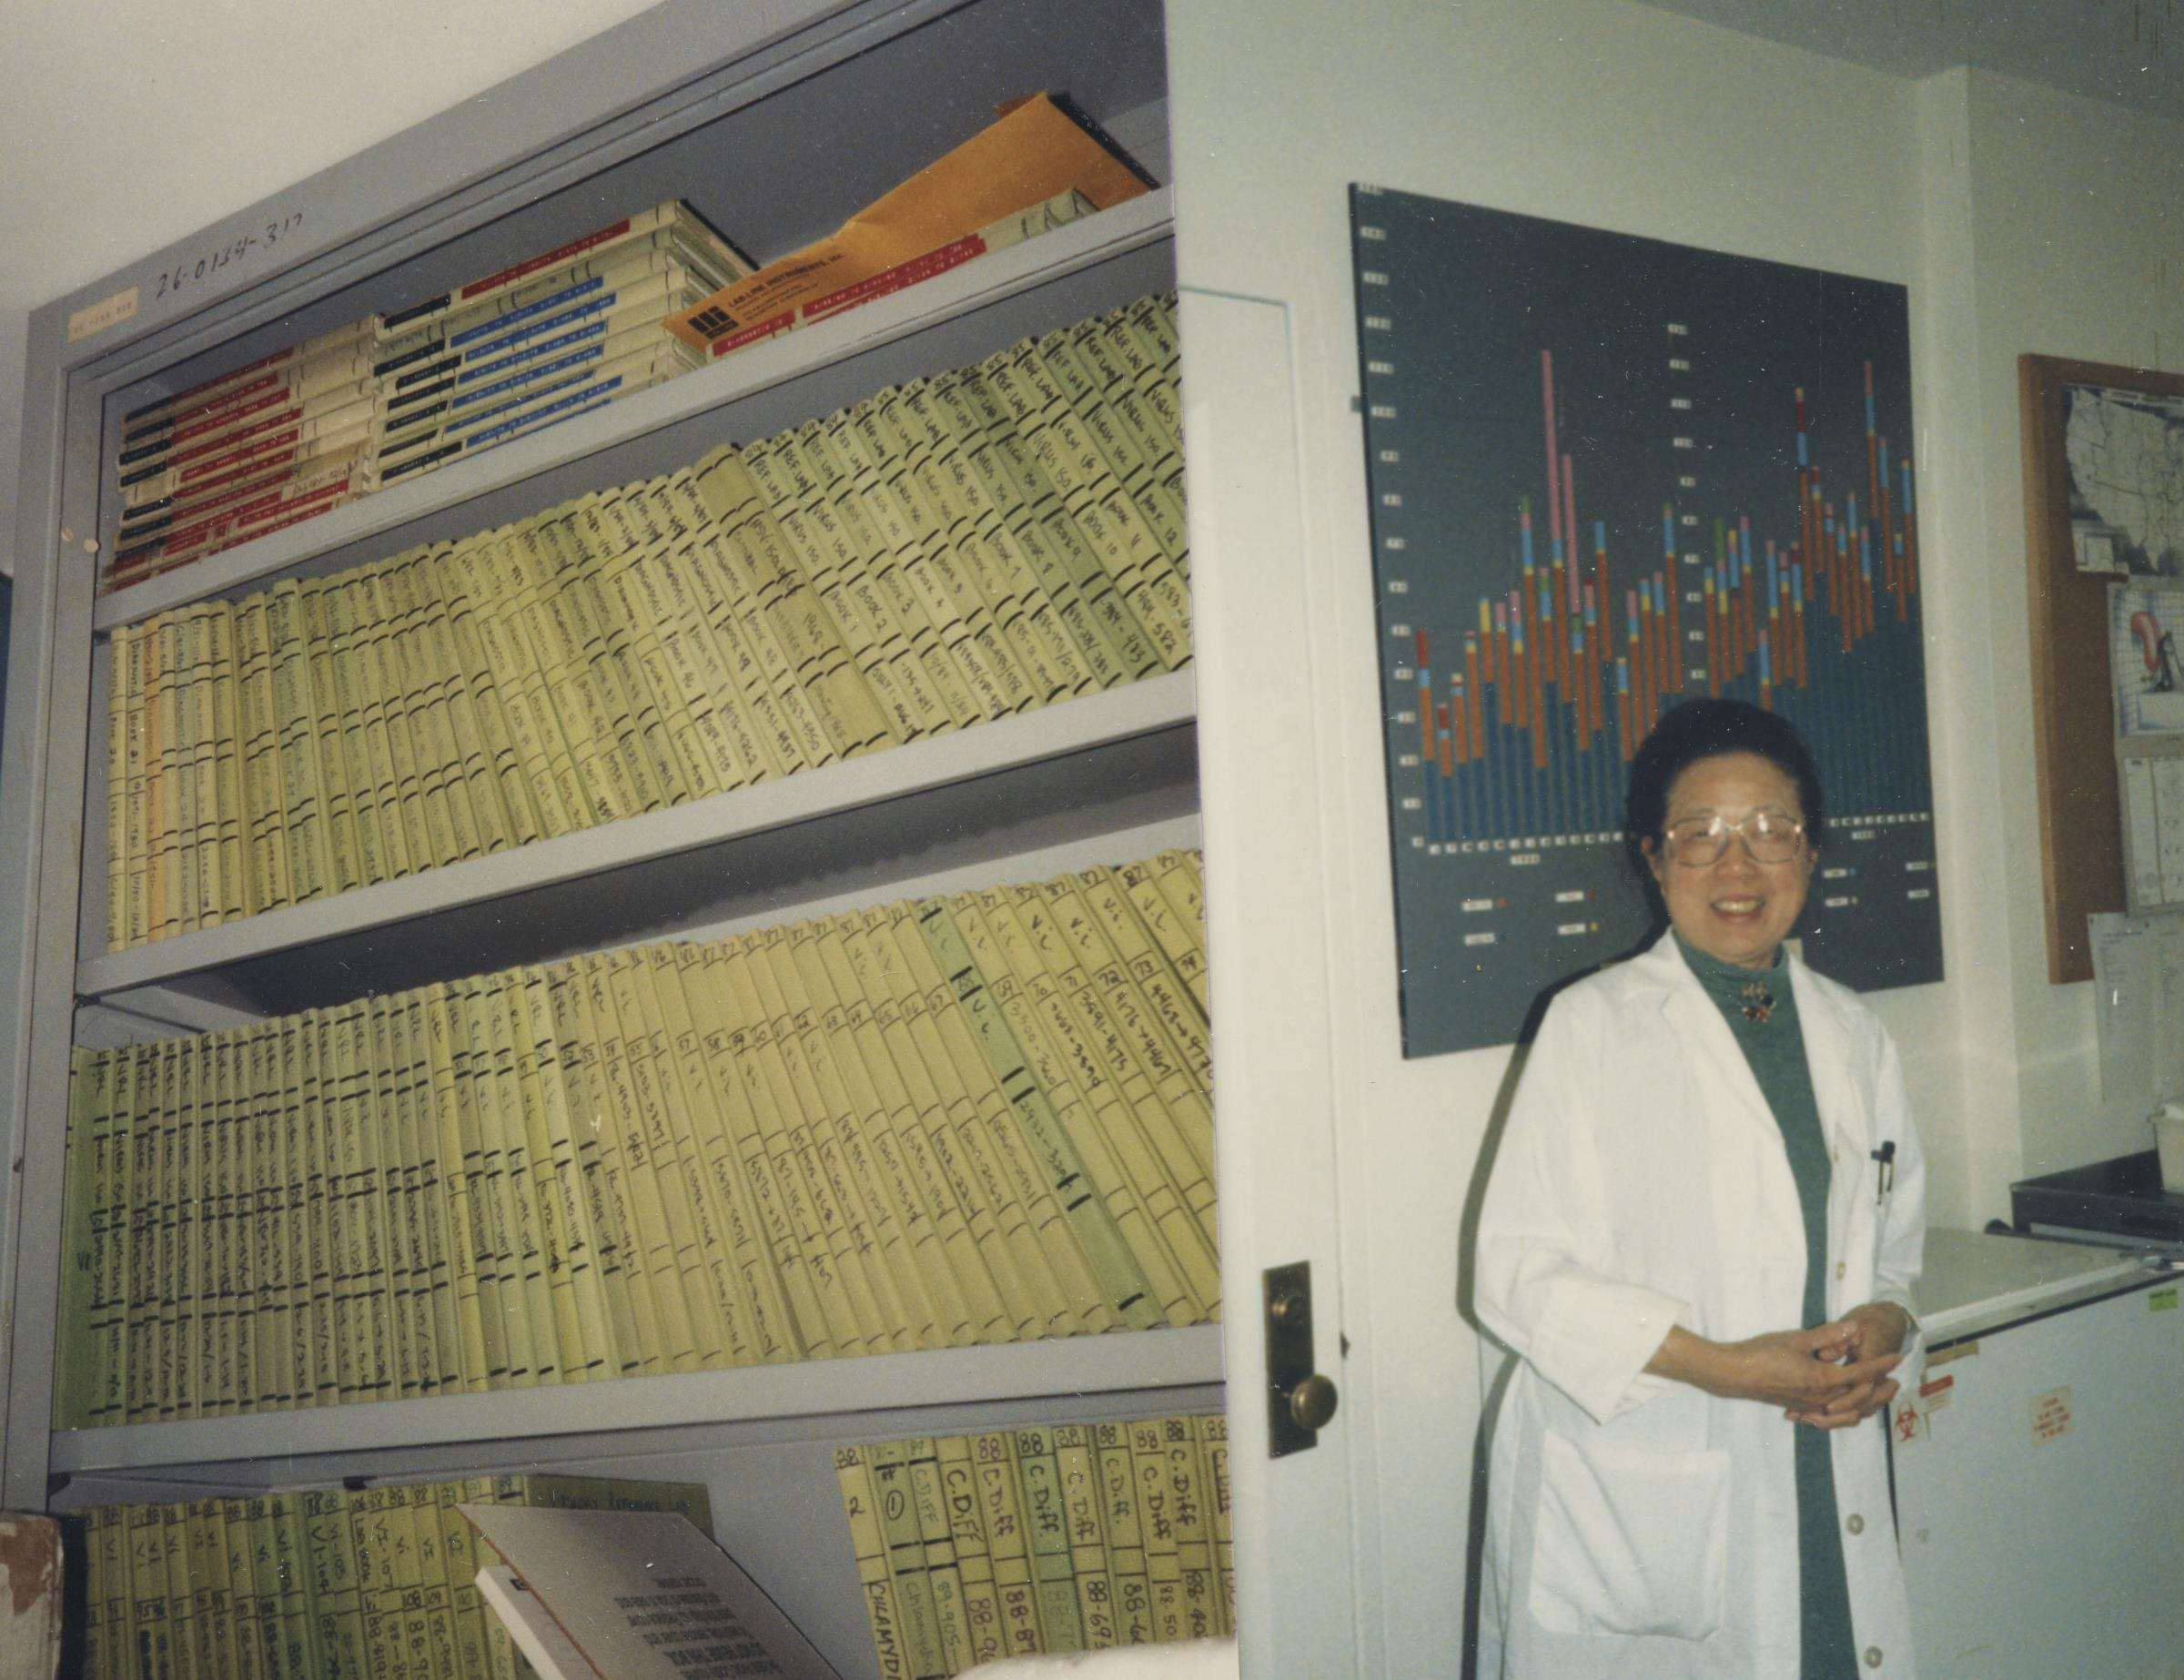 Leaving a lasting legacy at YSM and at the West Haven VA, Hsiung's research was translated into diagnostic tools for veterans